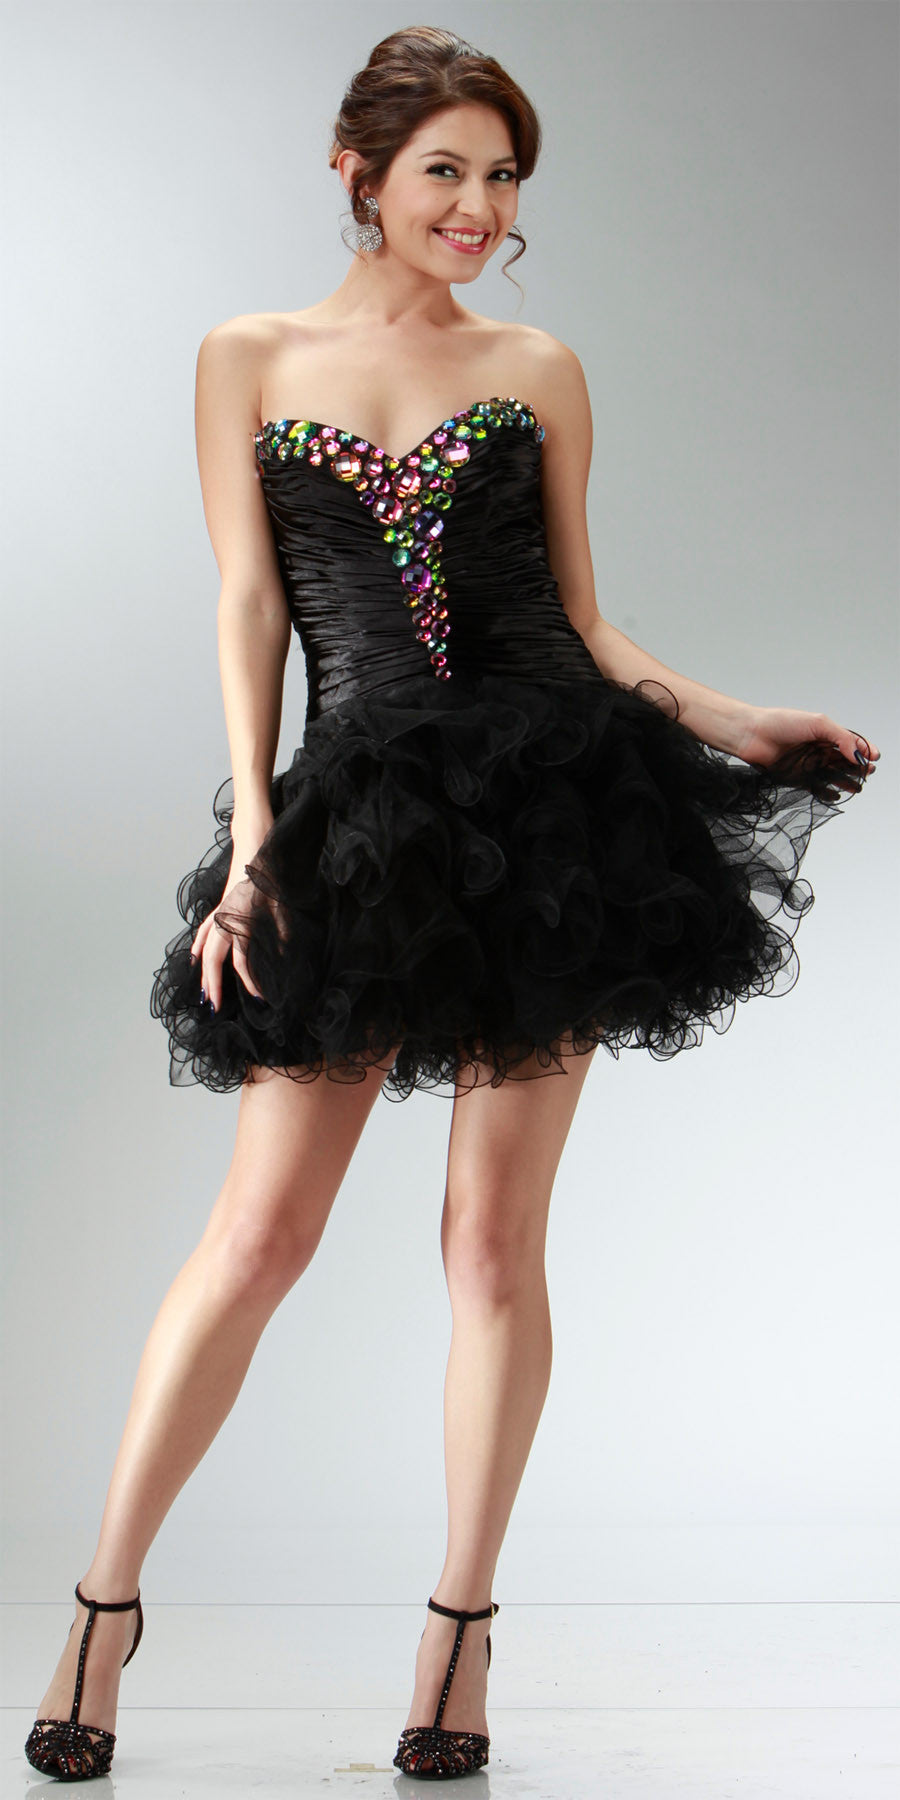 ON SPECIAL LIMITED STOCK - Short Black Winter Formal Dress Poofy Layer Skirt Ruffles Strapless